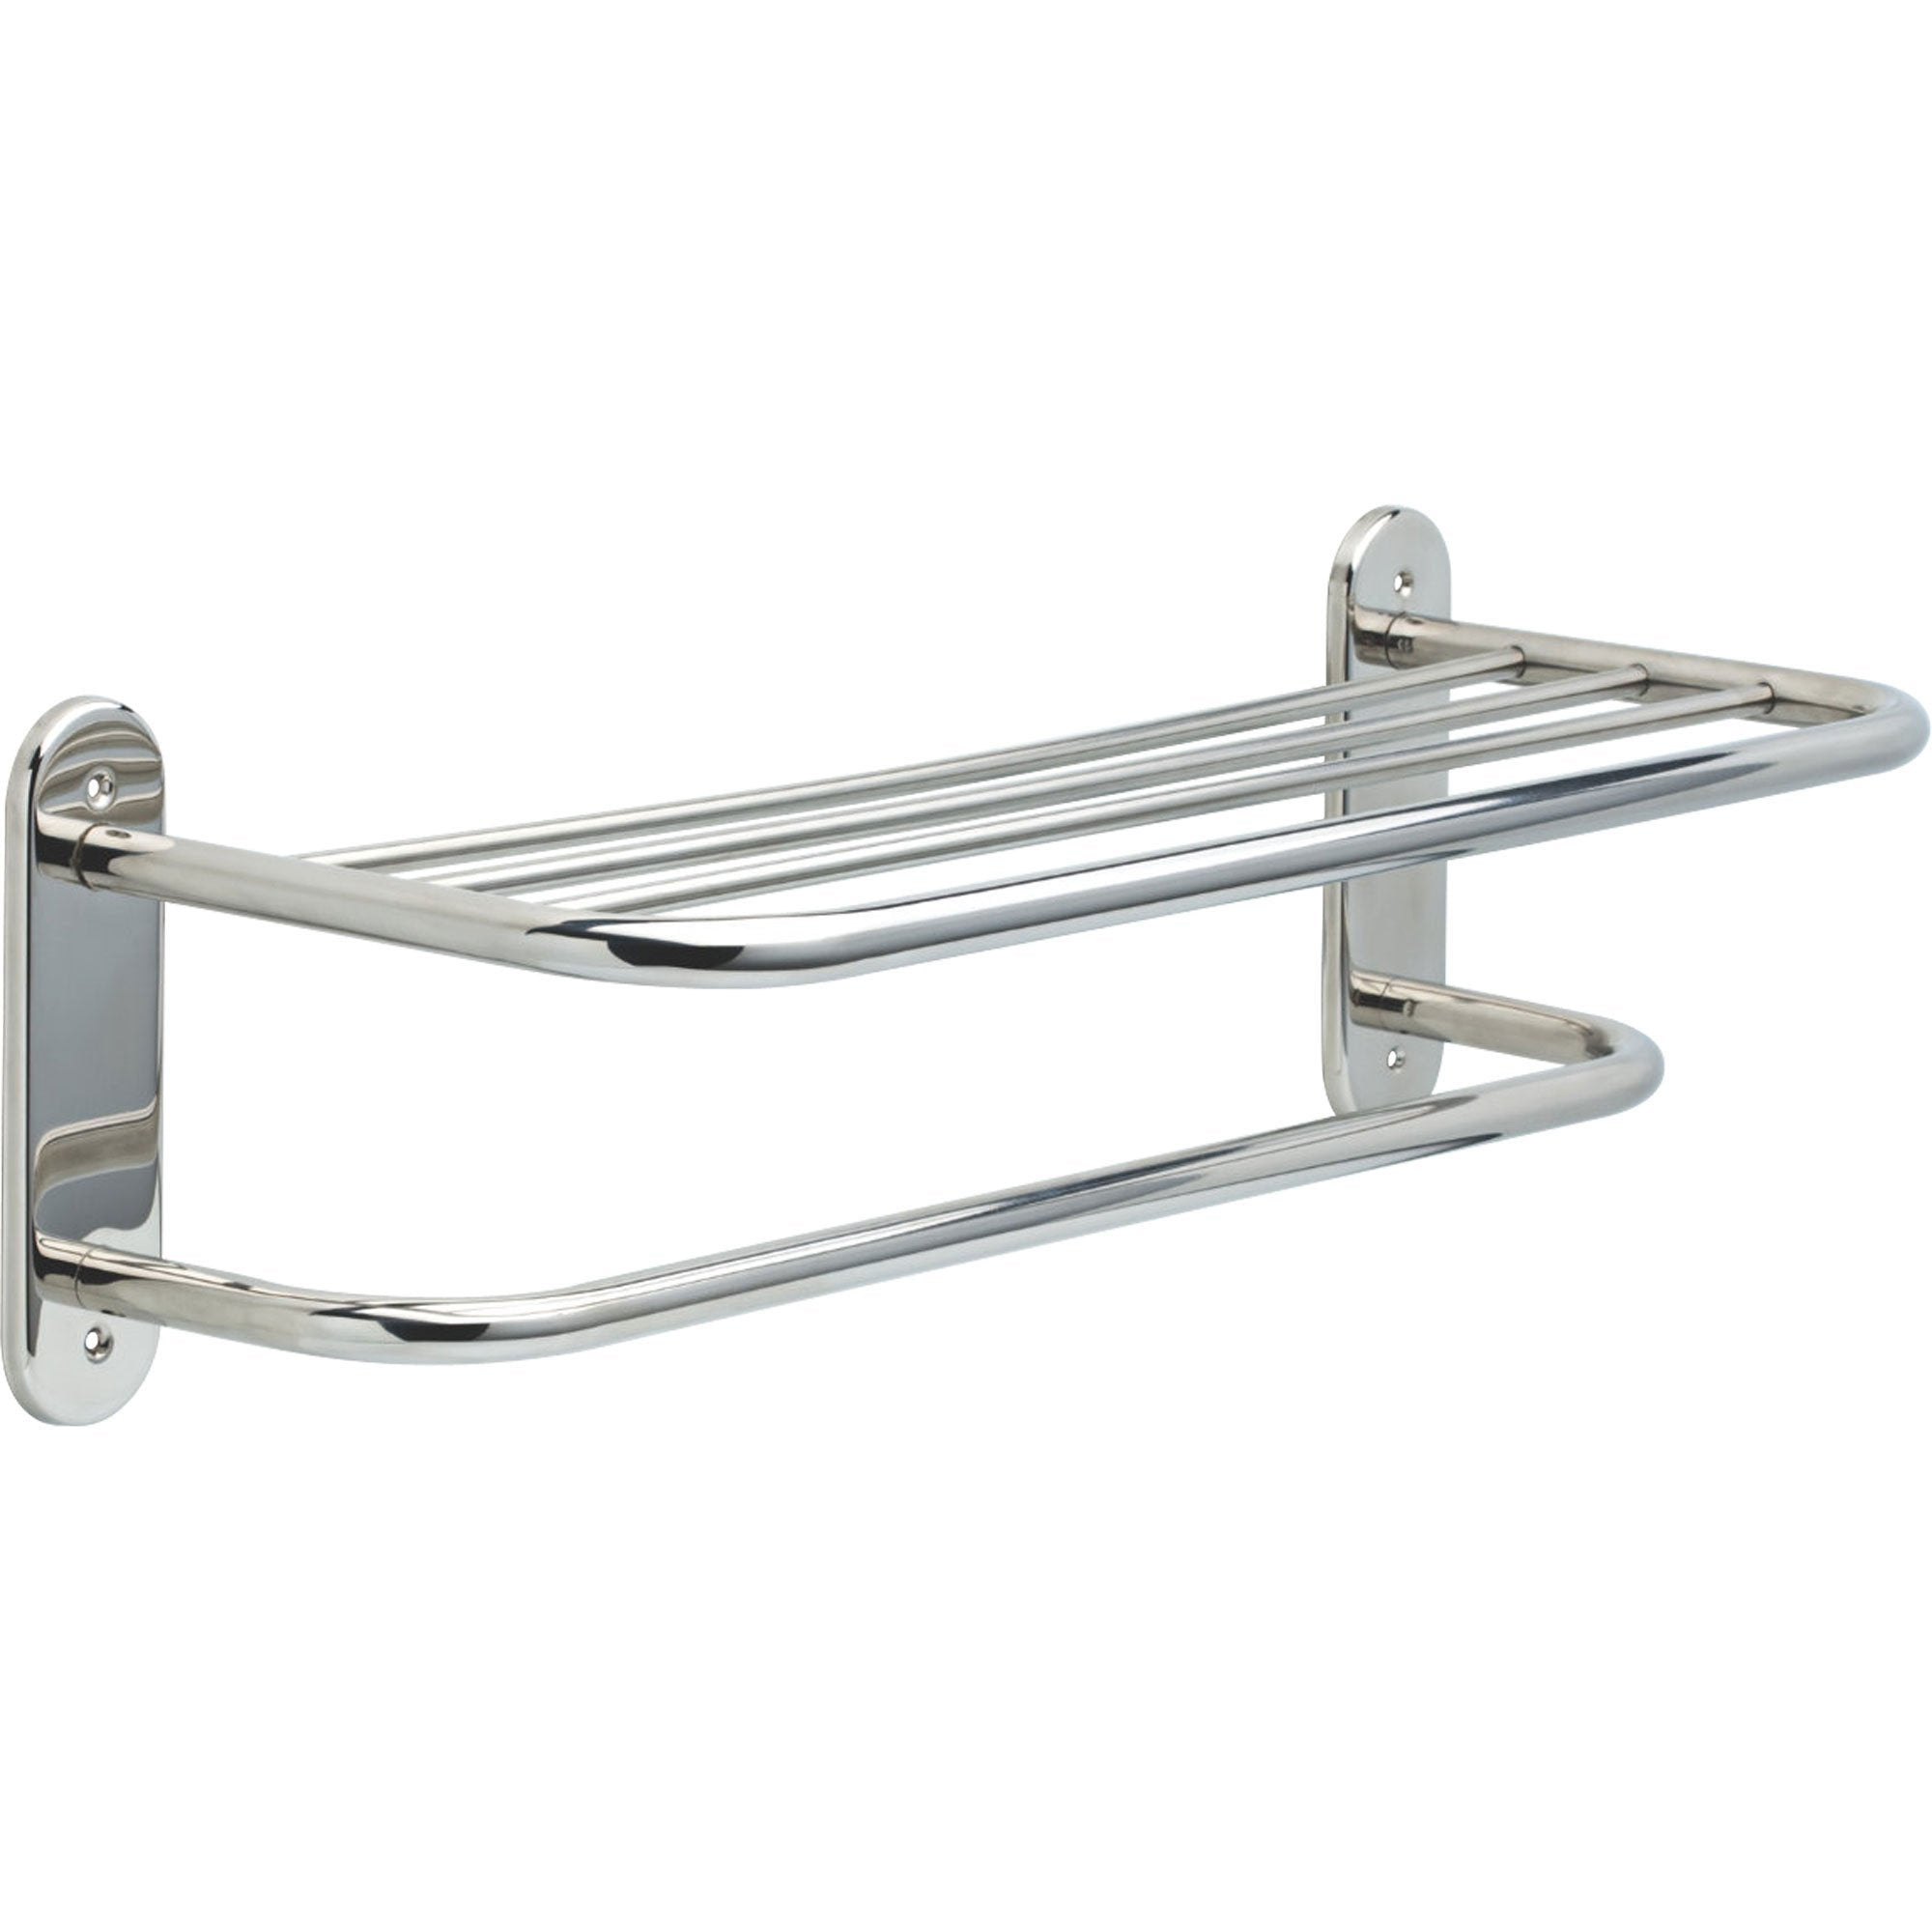 Delta Stainless Steel Finish 24 inch Bathroom Towel Bar with Shelf 572954